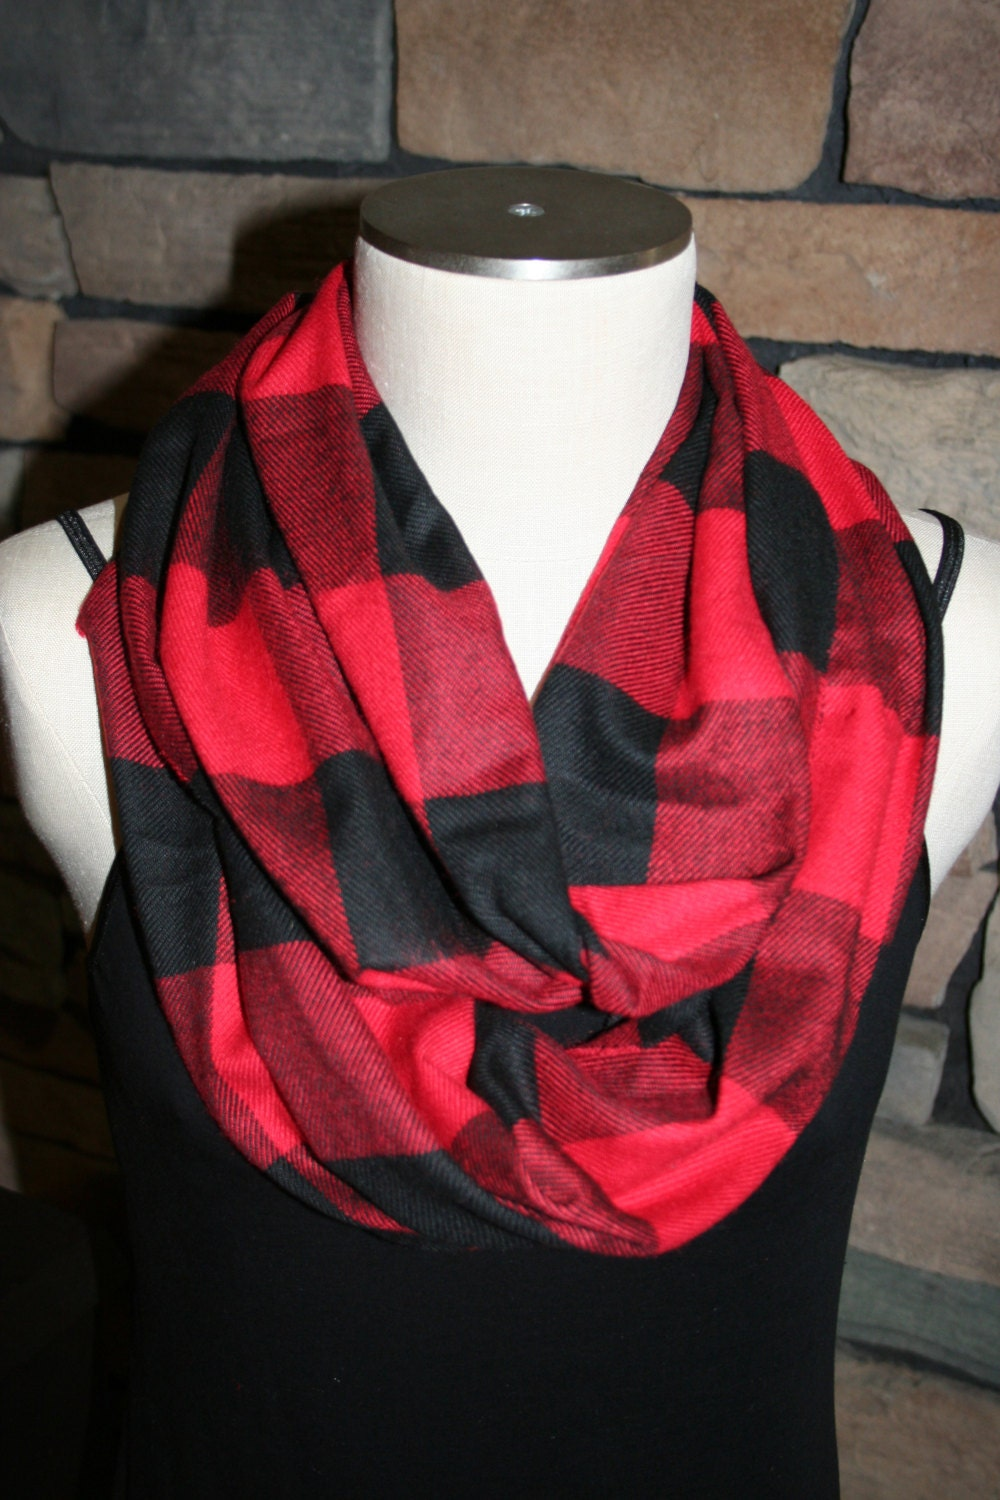 Buffalo Red Plaid Infinity Scarf Cashmere Red and Black Plaid